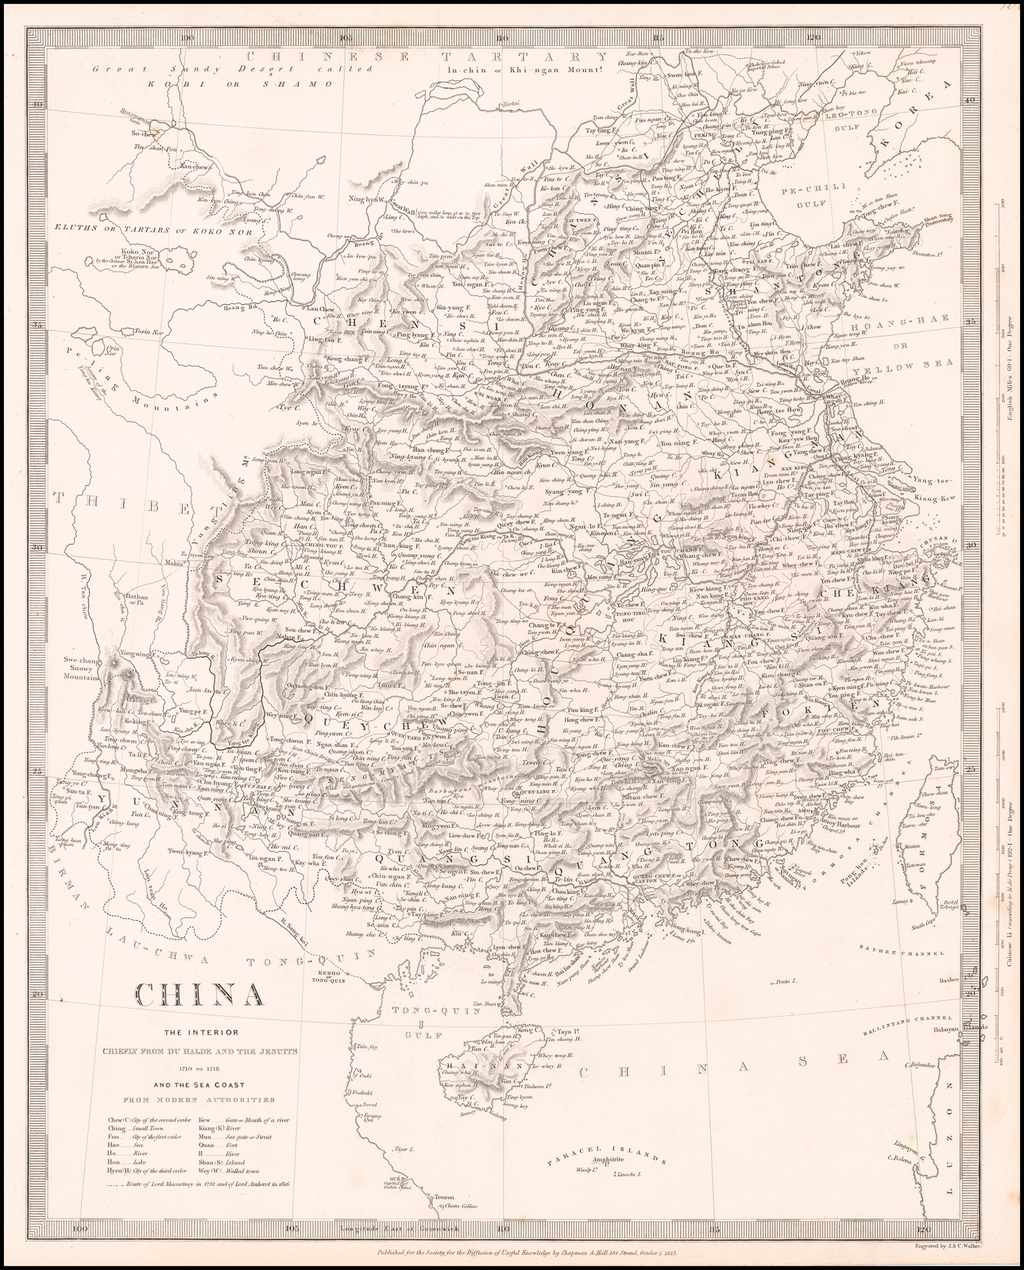 China.  The Interior.  Chiefly From Du Halde and The Jesuits 1710 to 1718 By SDUK